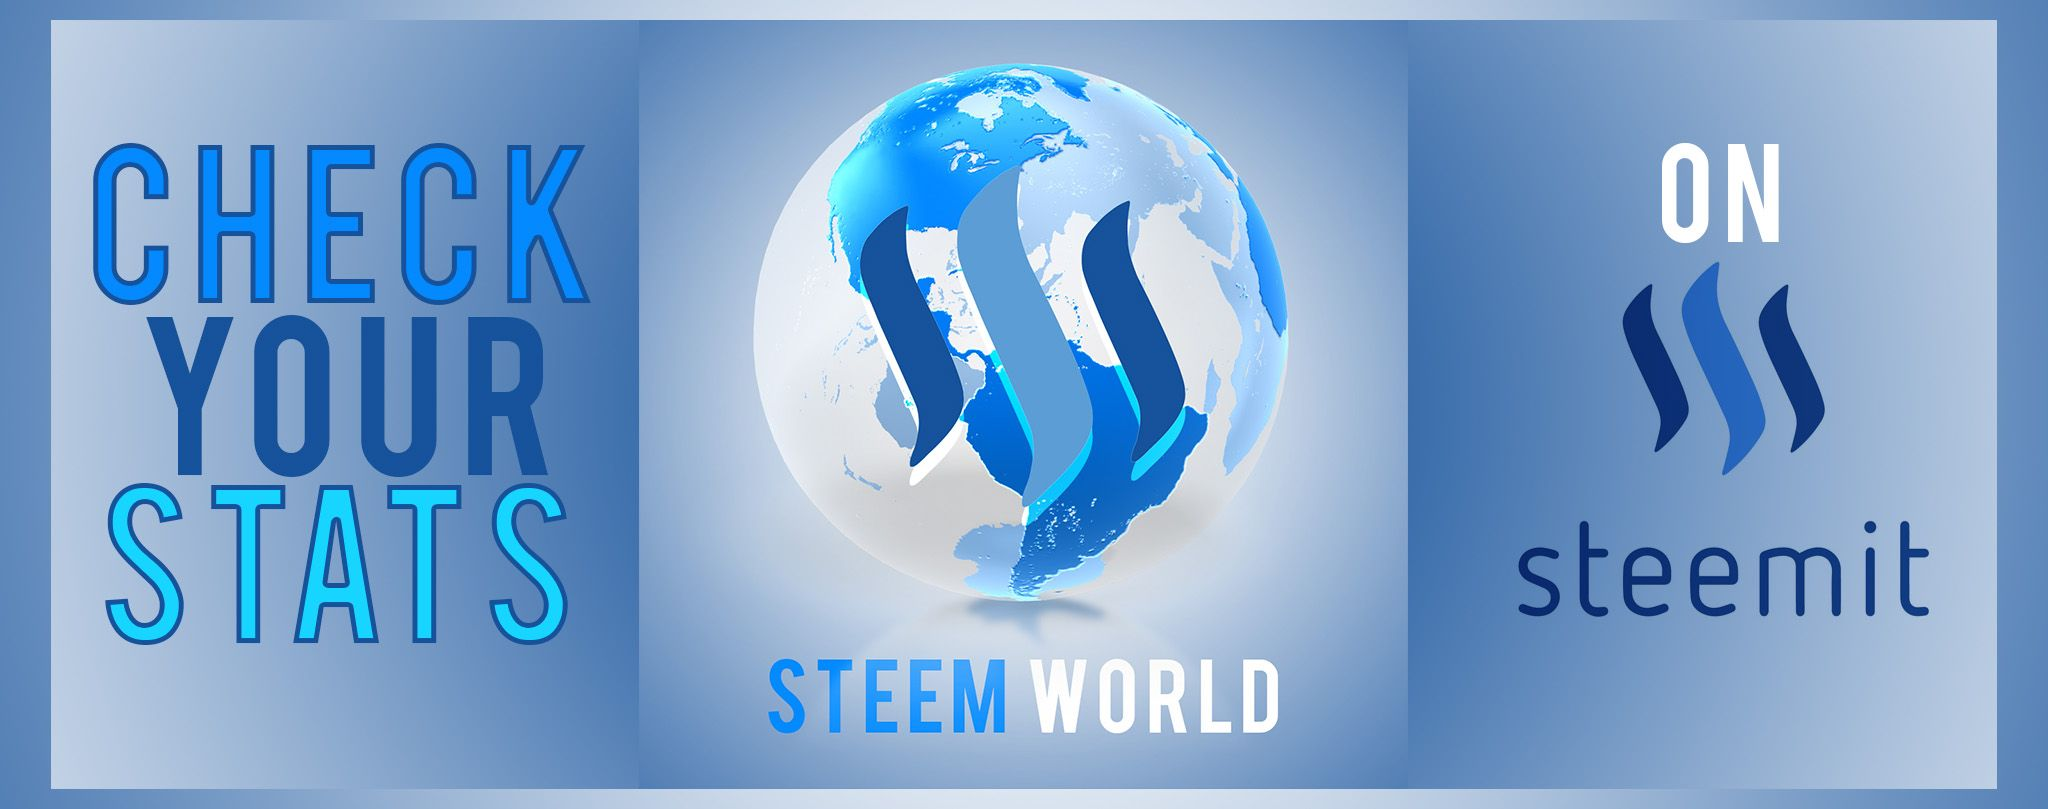 steem-world-thumbnail.jpg